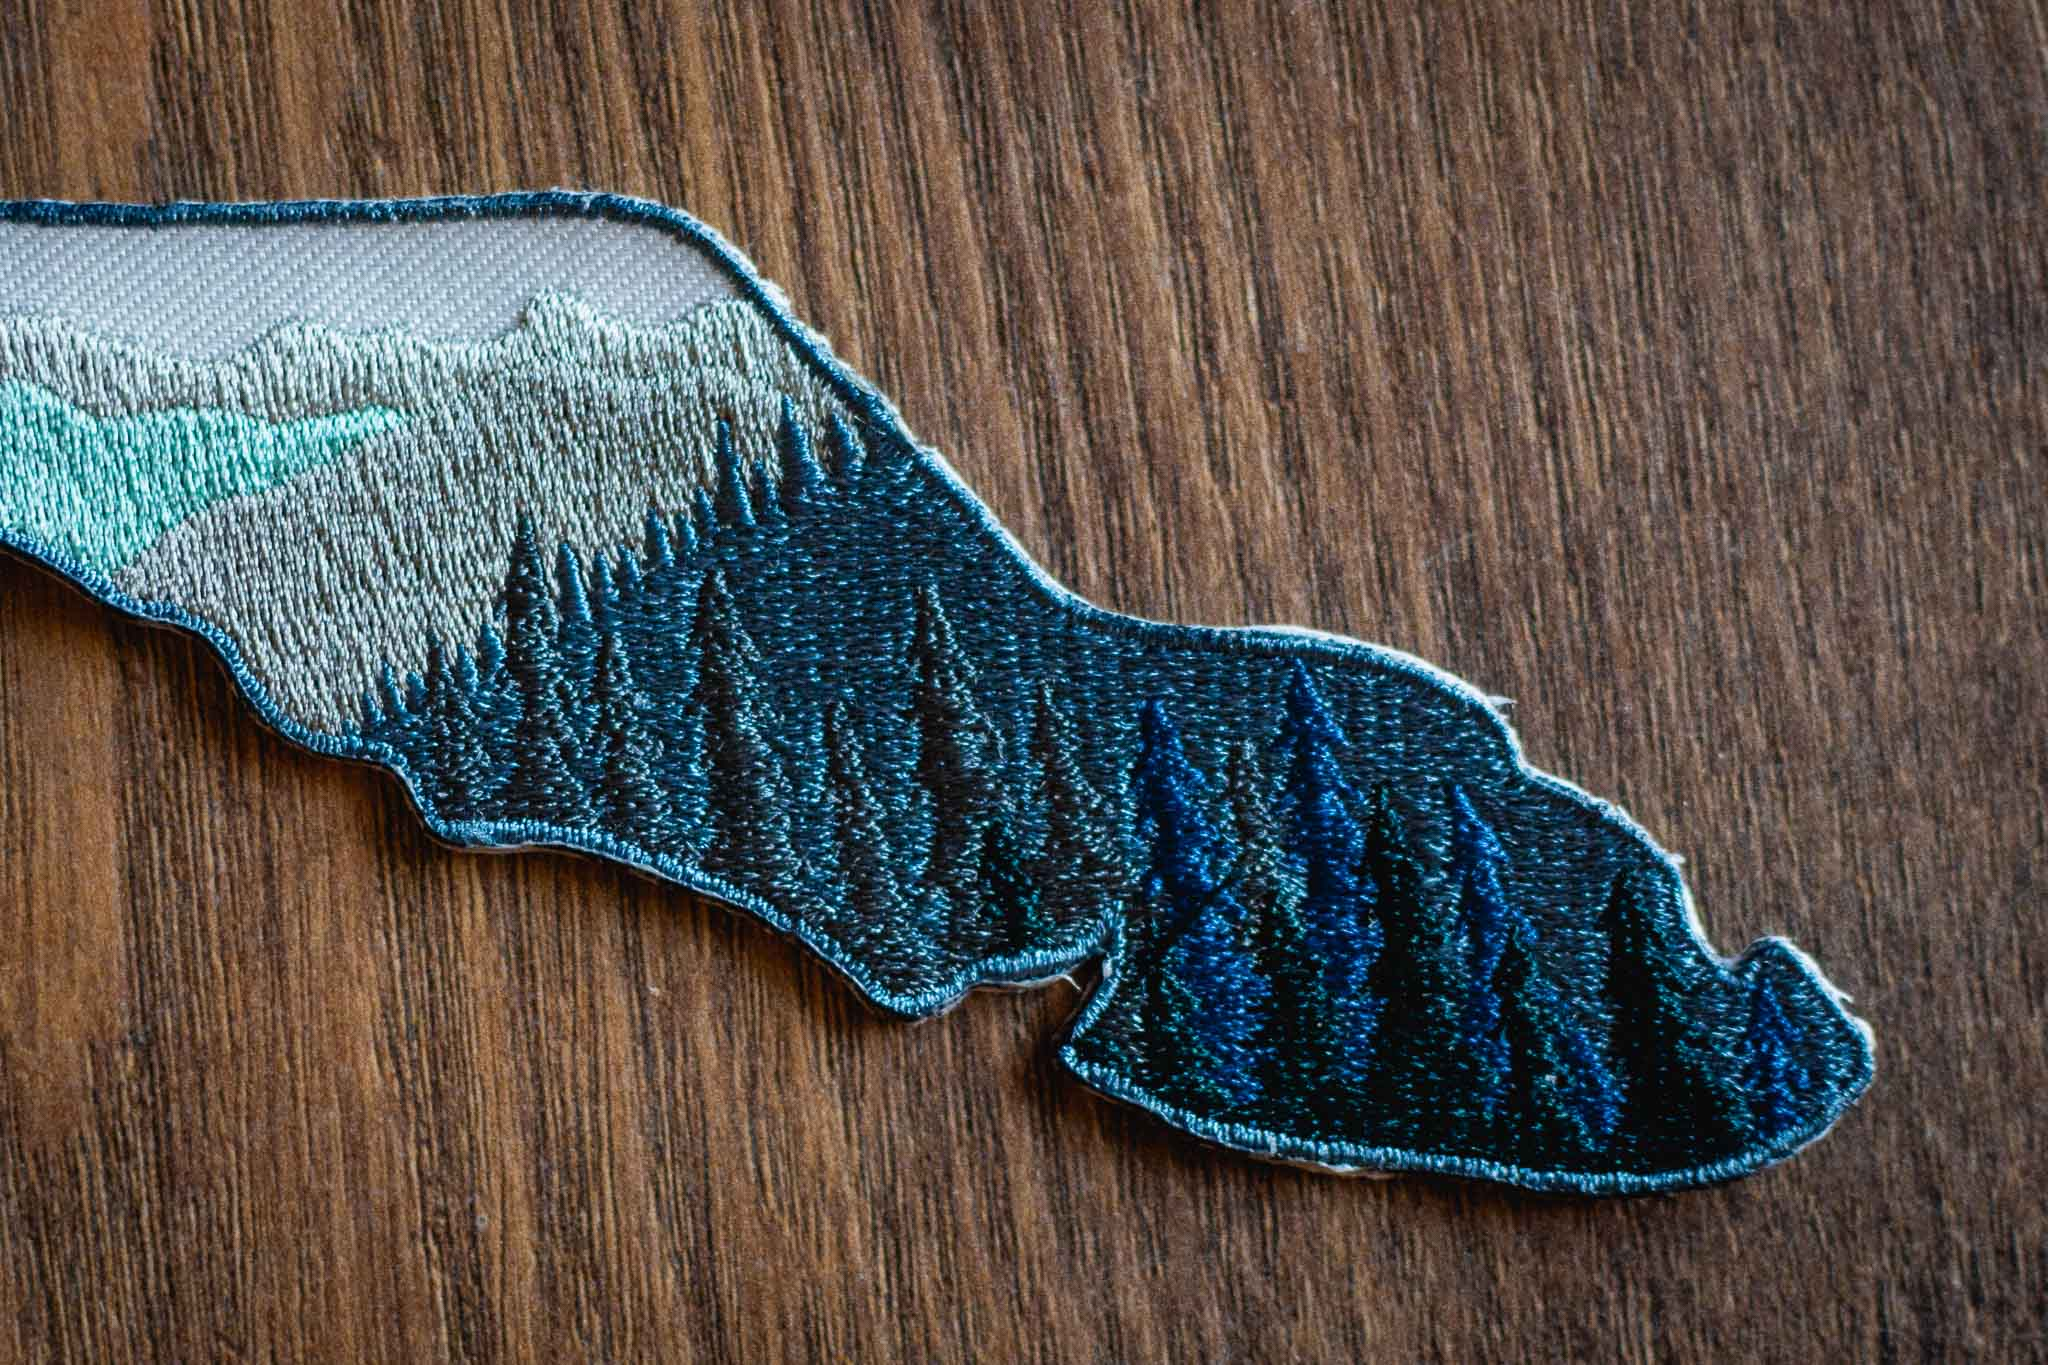 Island View Patches and Stickers by Bough and Antler